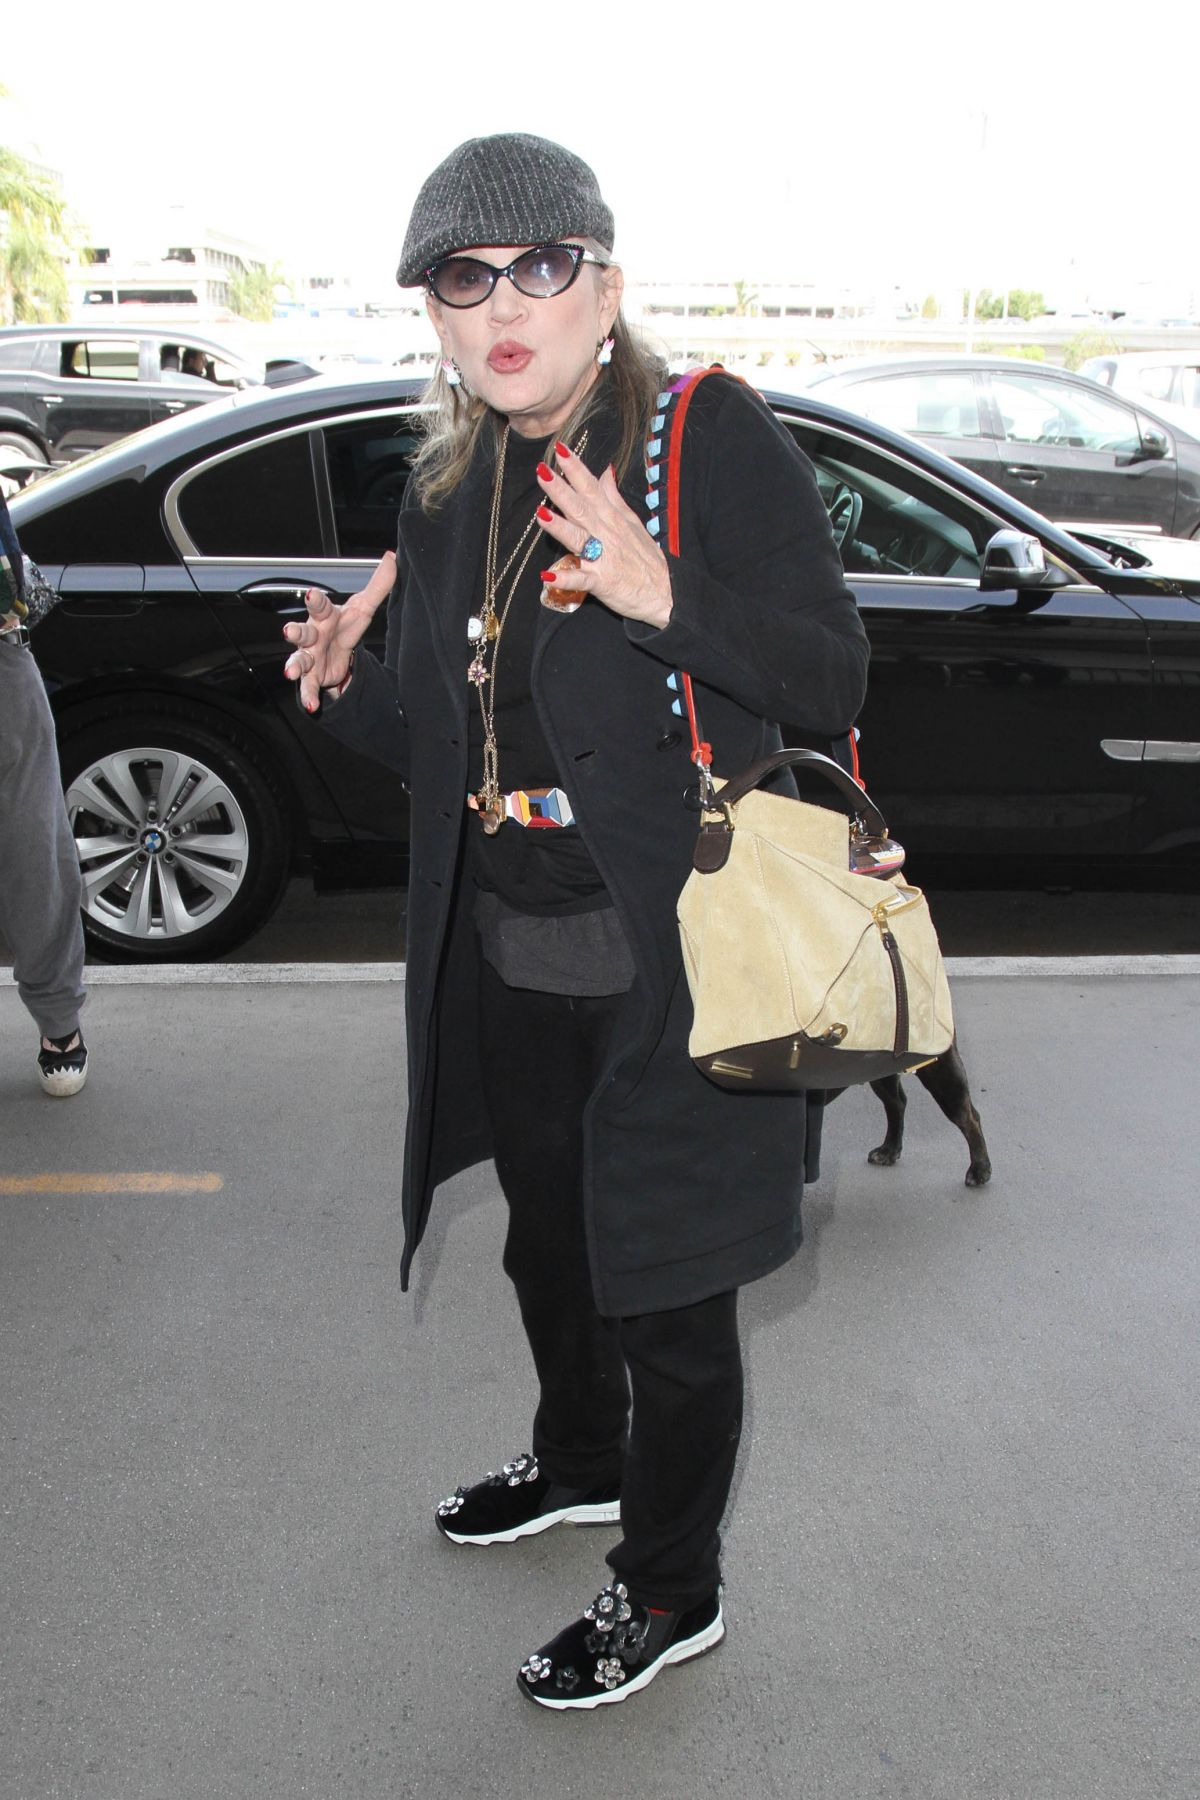 CARRIE FISHER at LAX Airport in Los Angeles 10/07/2016